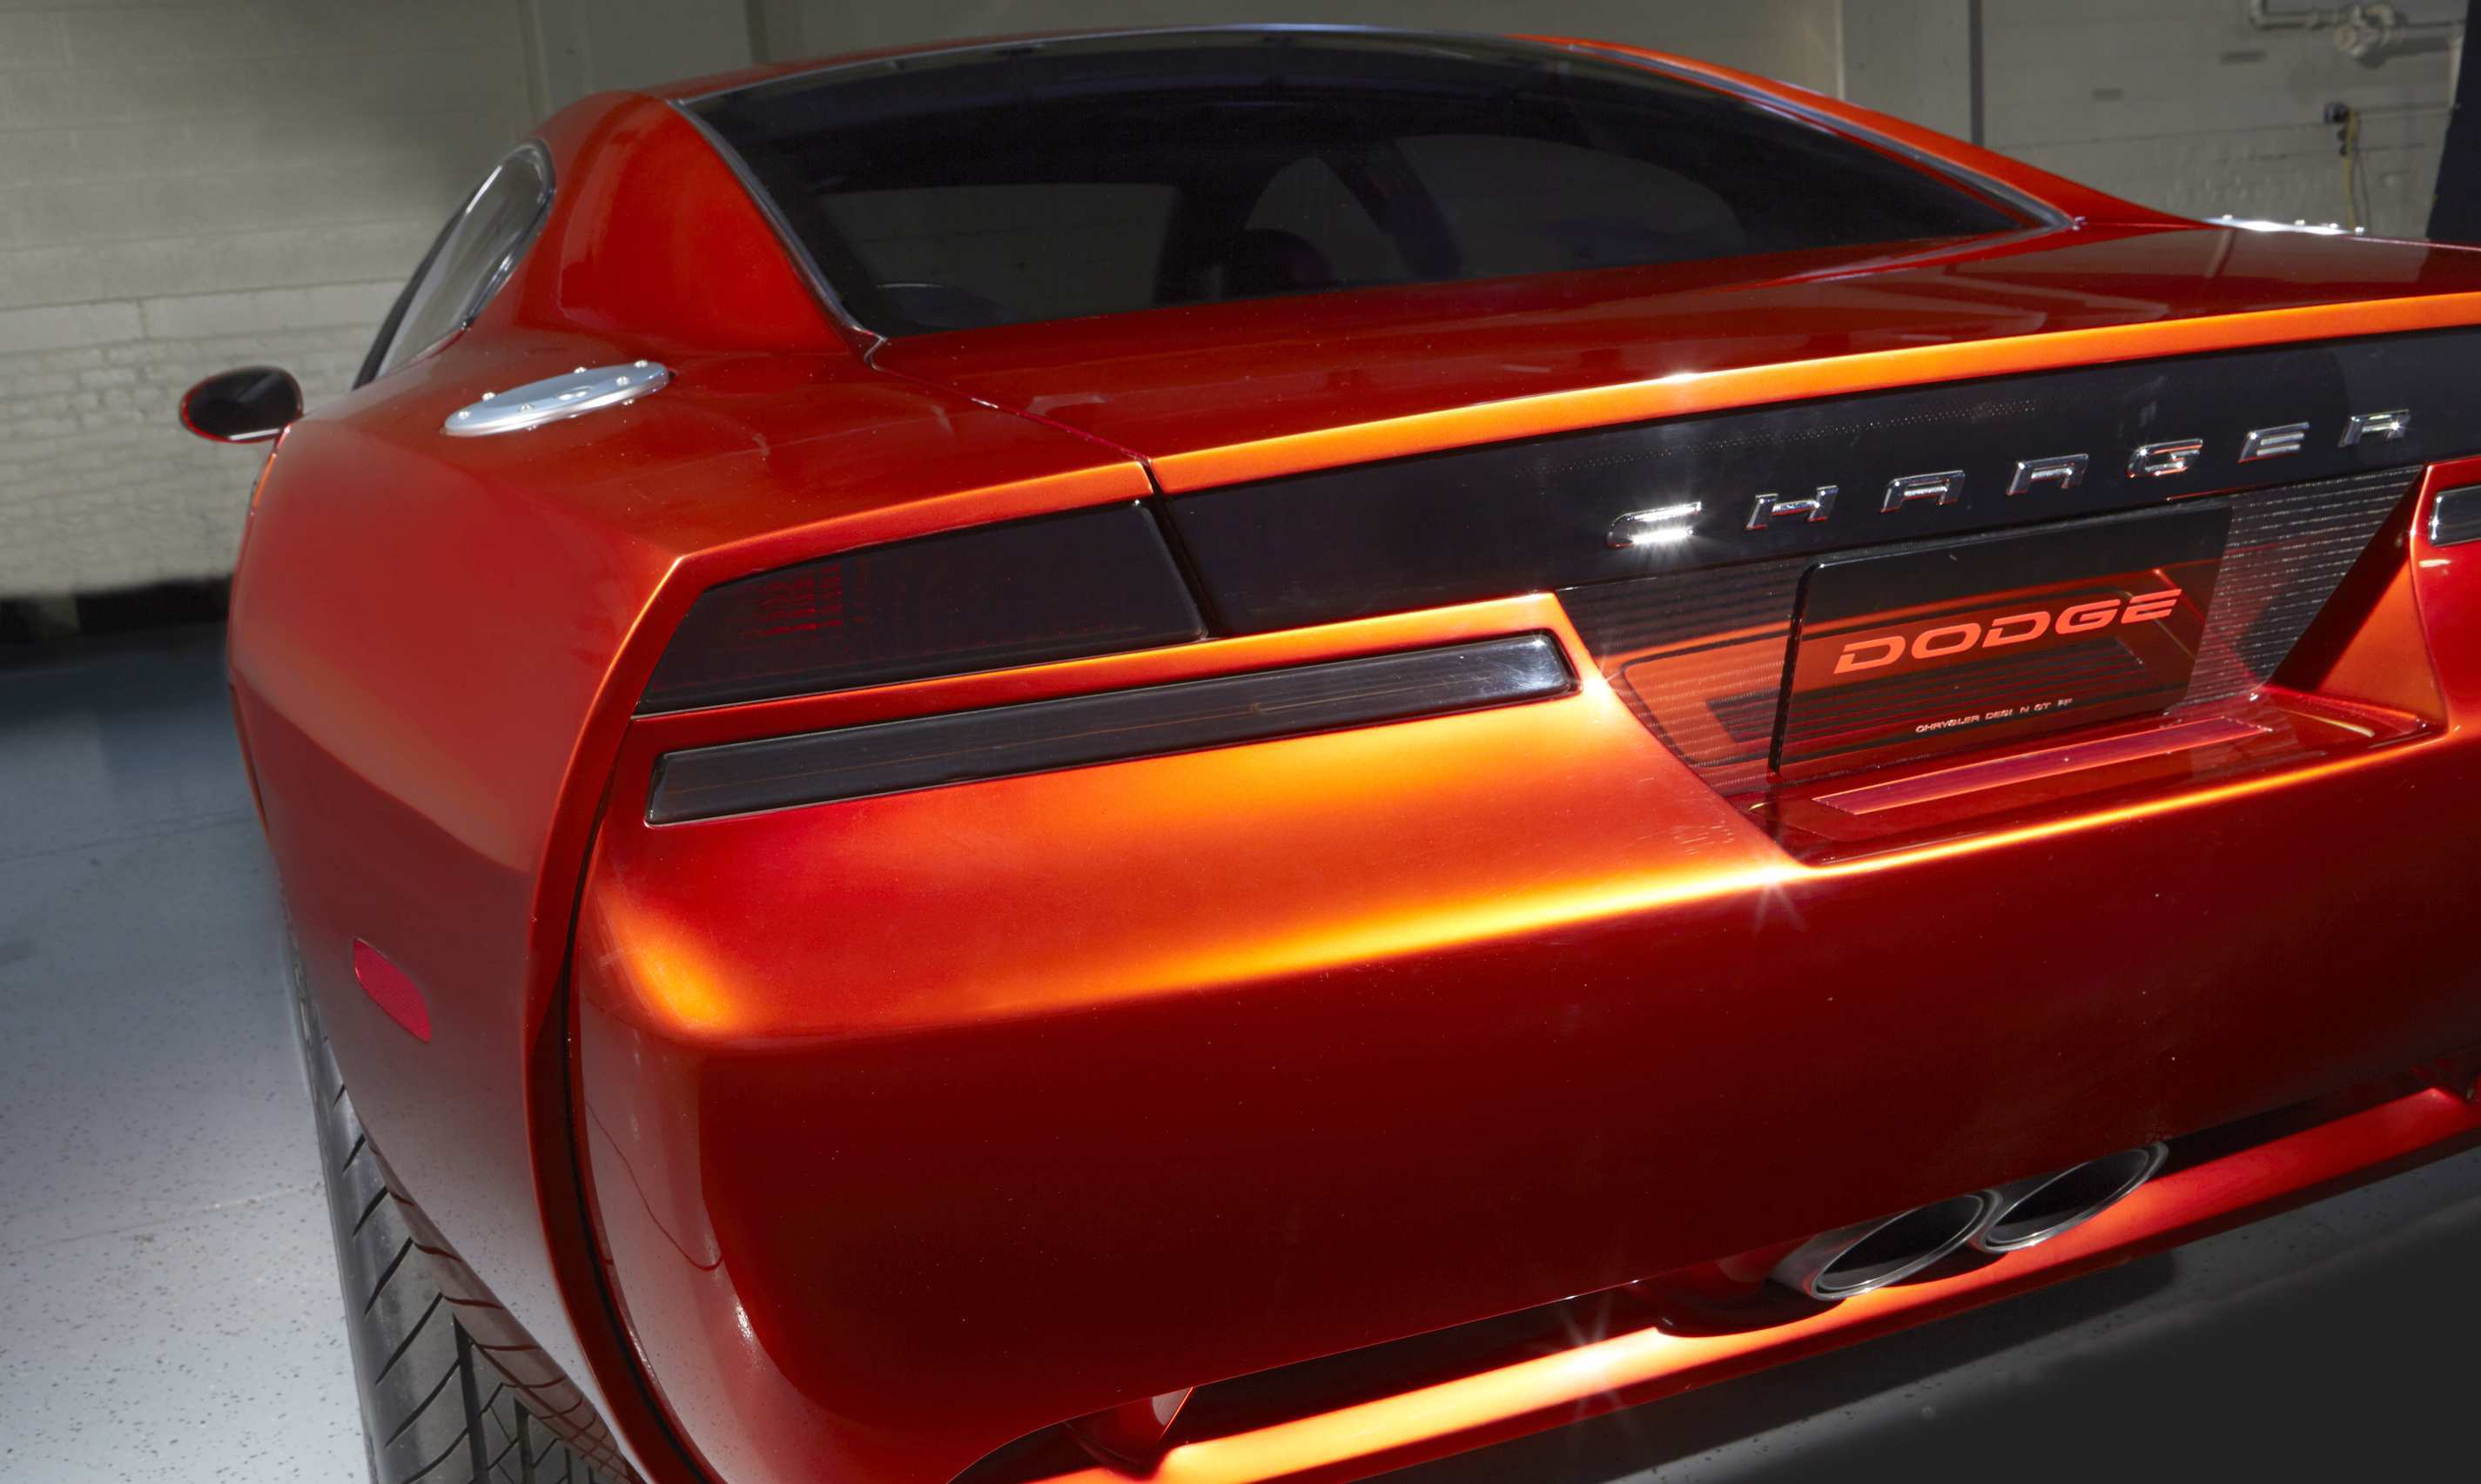 27 A Pictures Of 2020 Dodge Charger Rumors